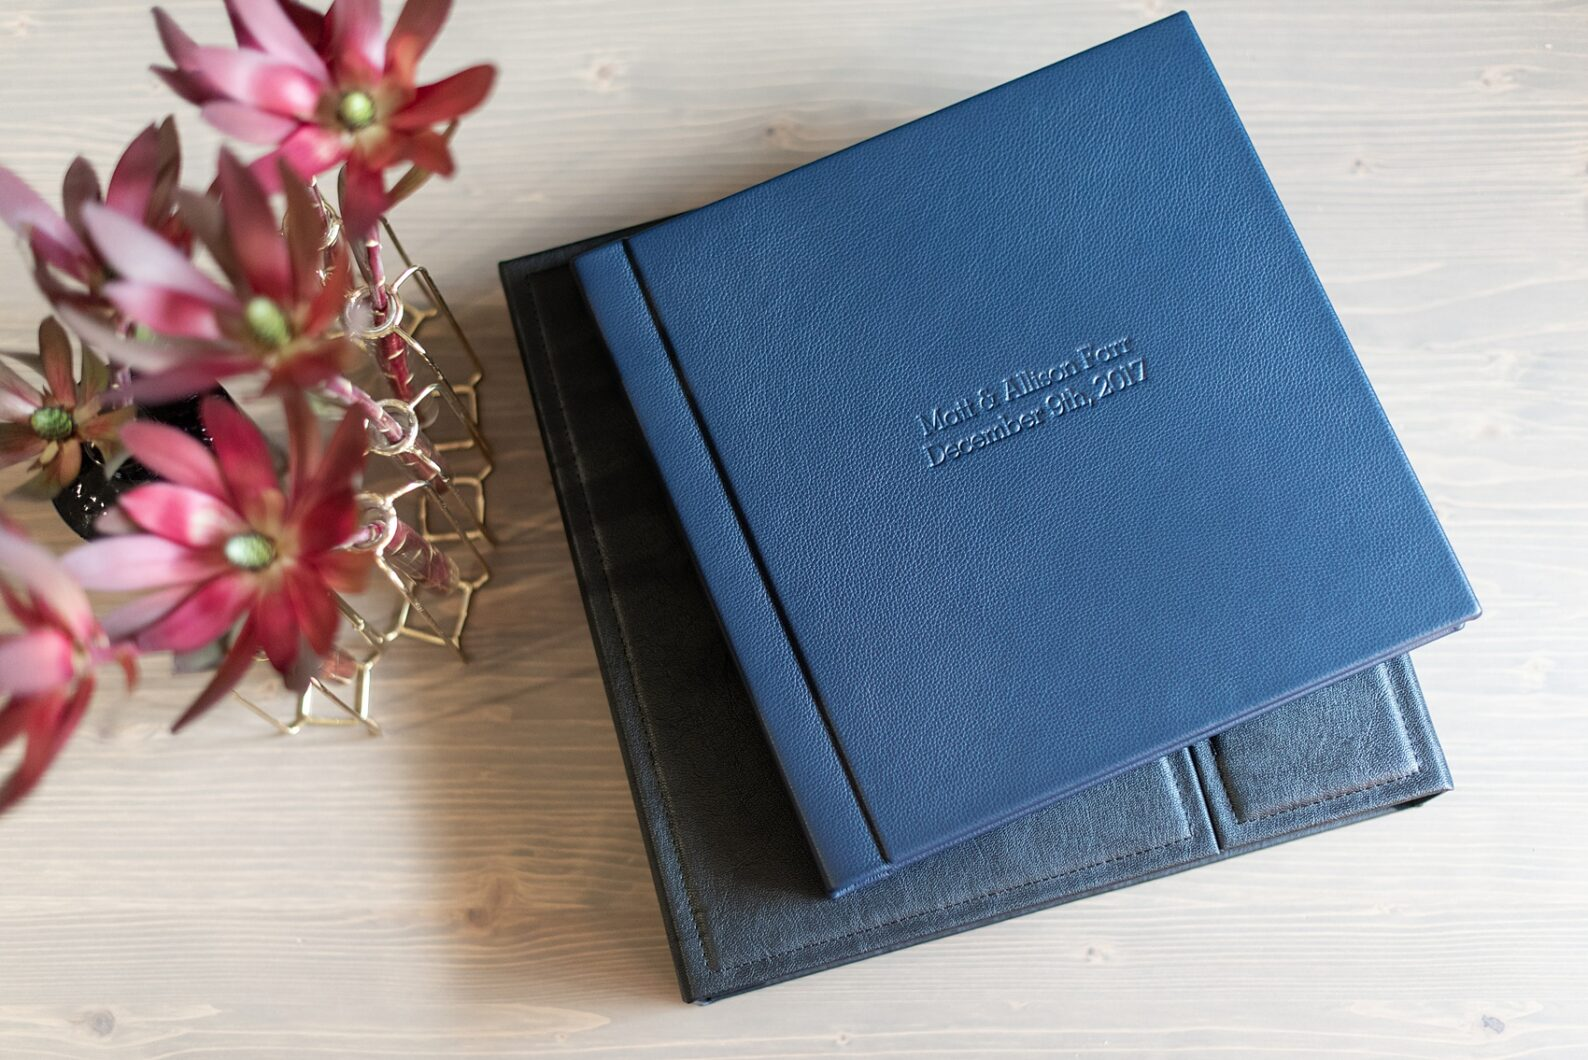 Navy blue leather fine art wedding album from Mikkel Paige Photography, with photos from a snowy winter wedding at The Carolina Inn, in North Carolina. This beatiful, historic venue in Chapel Hill is perfect for outdoor and indoor events no matter if it's spring, summer or fall too. Click through to see more pictures of this couples gorgeous family heirloom keepsakes! #mikkelpaige #carolinainnweddingphotos #carolinainn #leatheralbum #weddingalbum #chapelhill